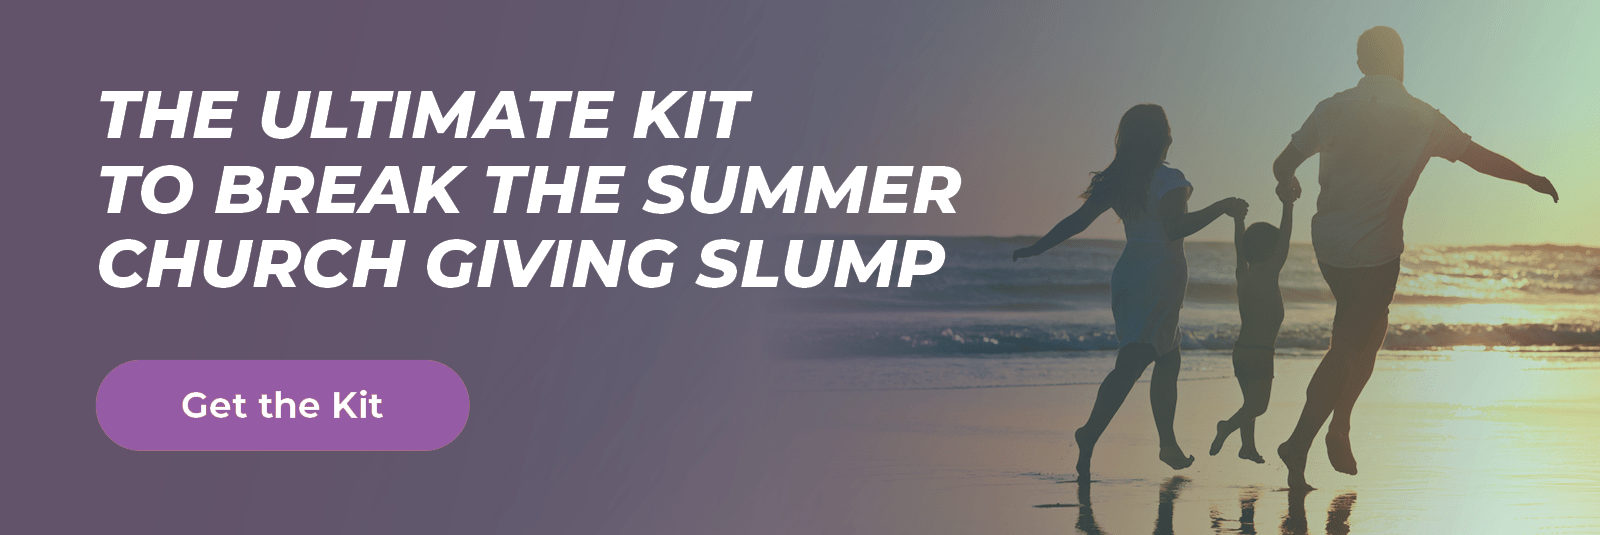 The Ultimate Kit to Break the Summer Church Giving Slump